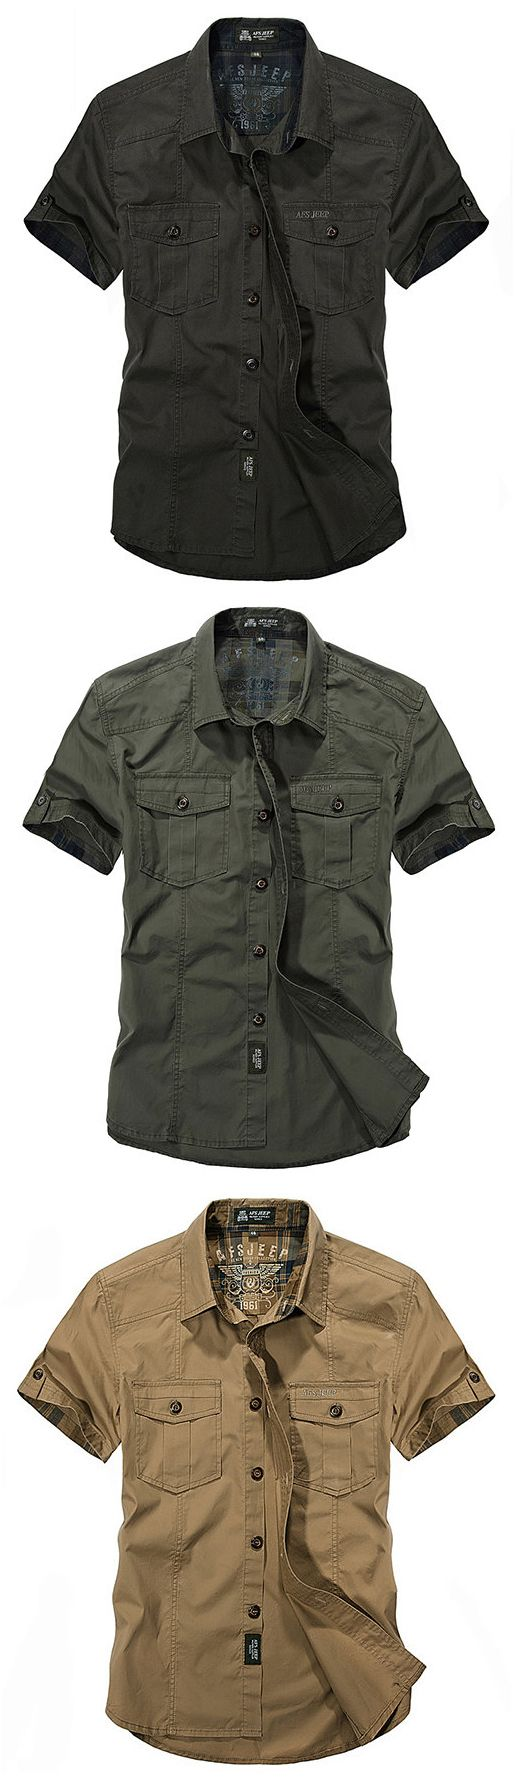 AFSJEEP Outdoor Sport Cotton Breathable Multi Pockets Cargo Short Sleeve Dress Shirts for Men